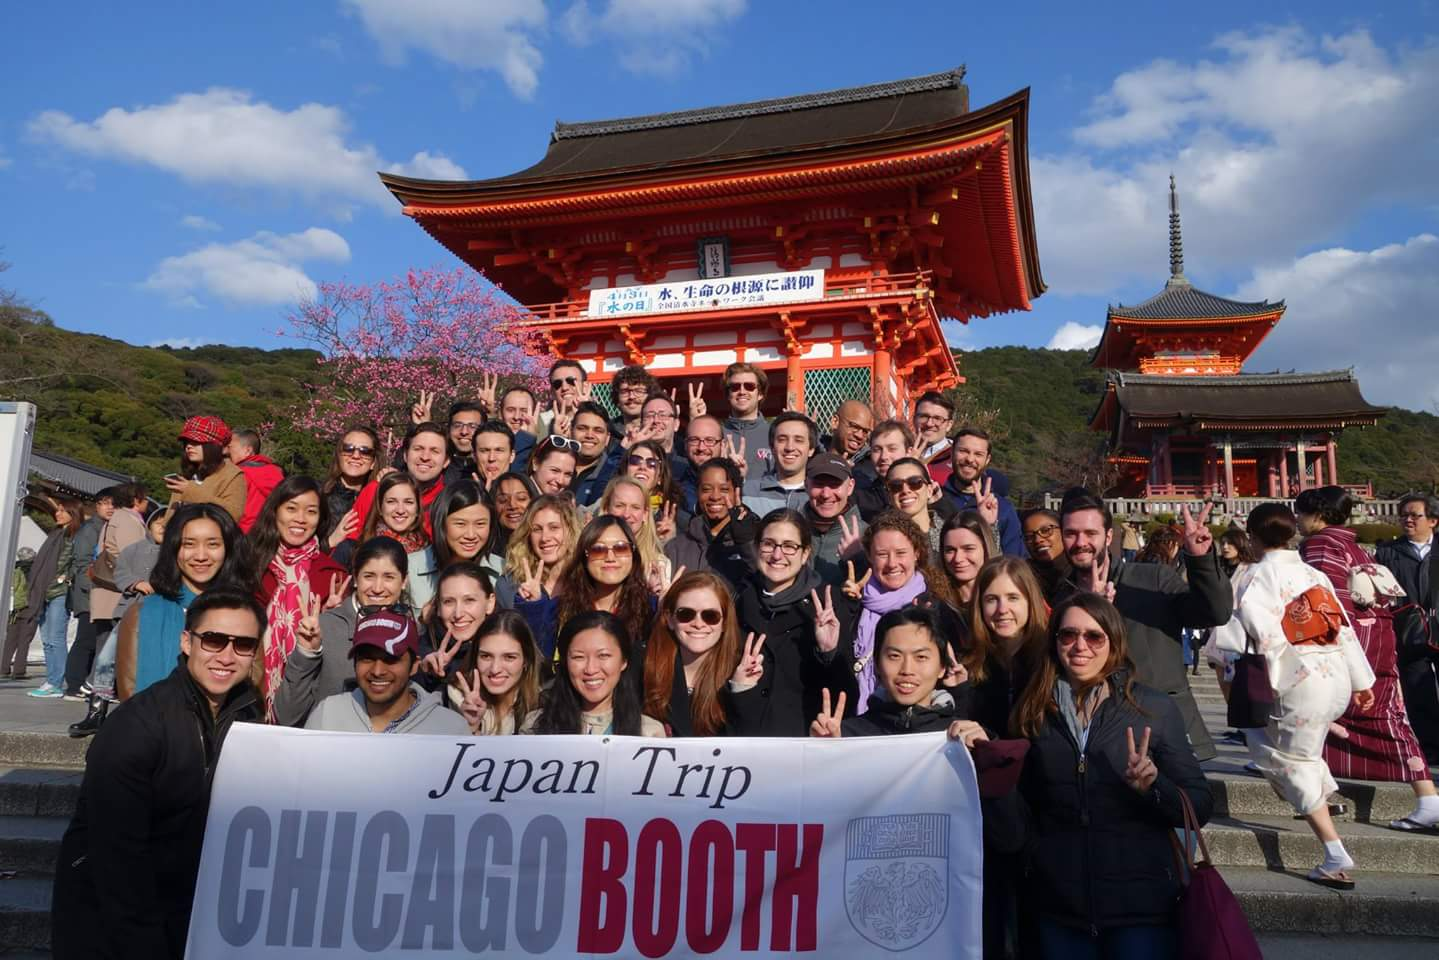 2015 Japan Spring Break - the trip that was not for free.